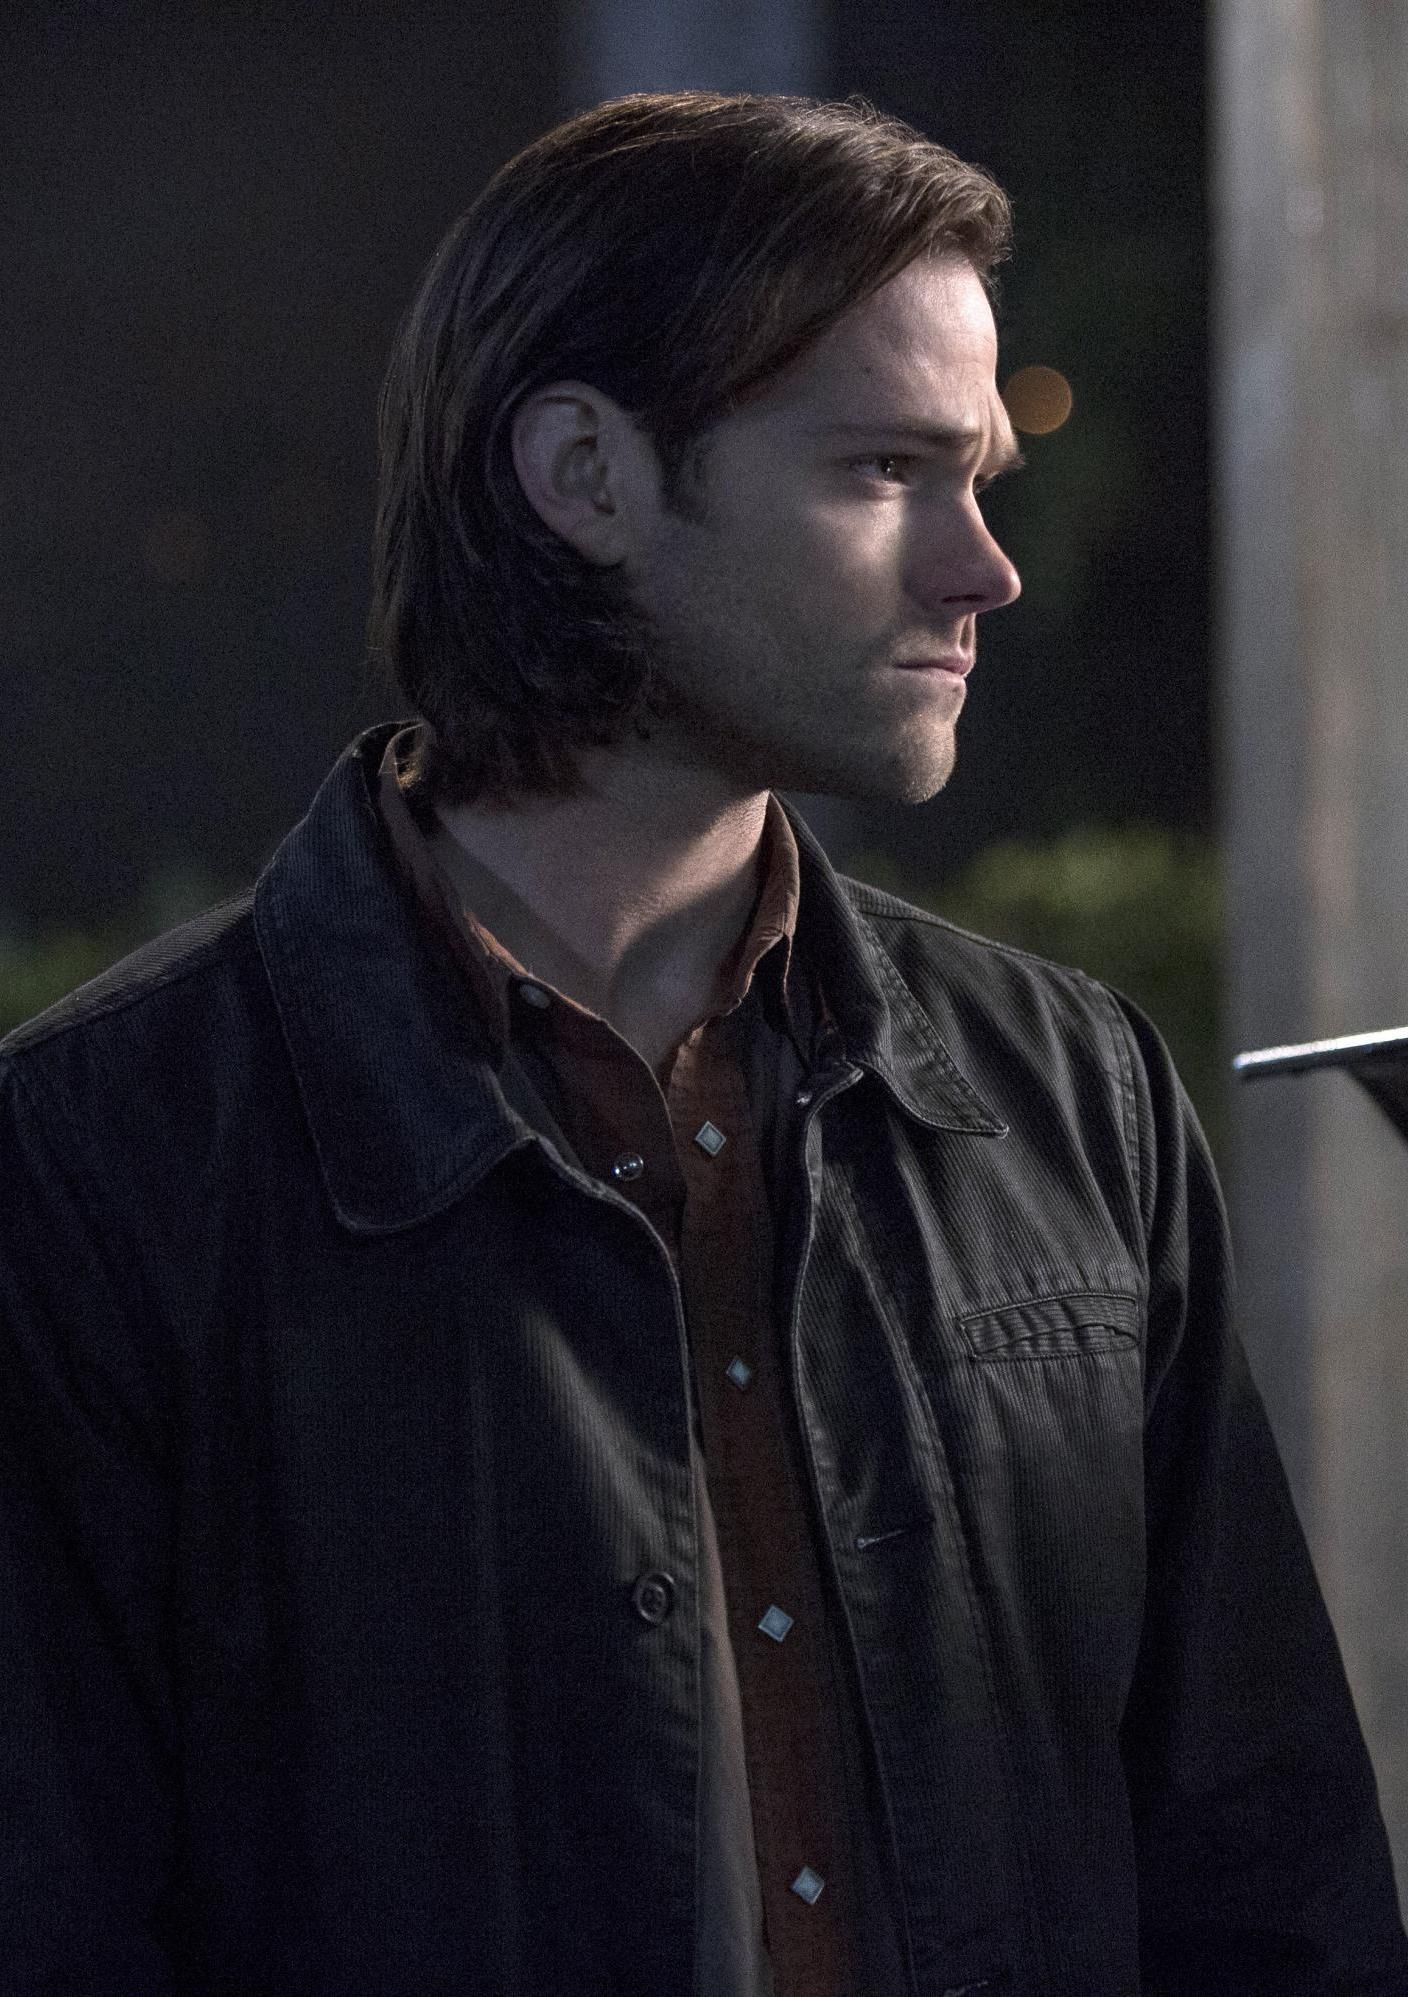 Sam supernatural season 9 episode 23 do you believe in sam supernatural season 9 episode 23 do you believe in miracles voltagebd Image collections